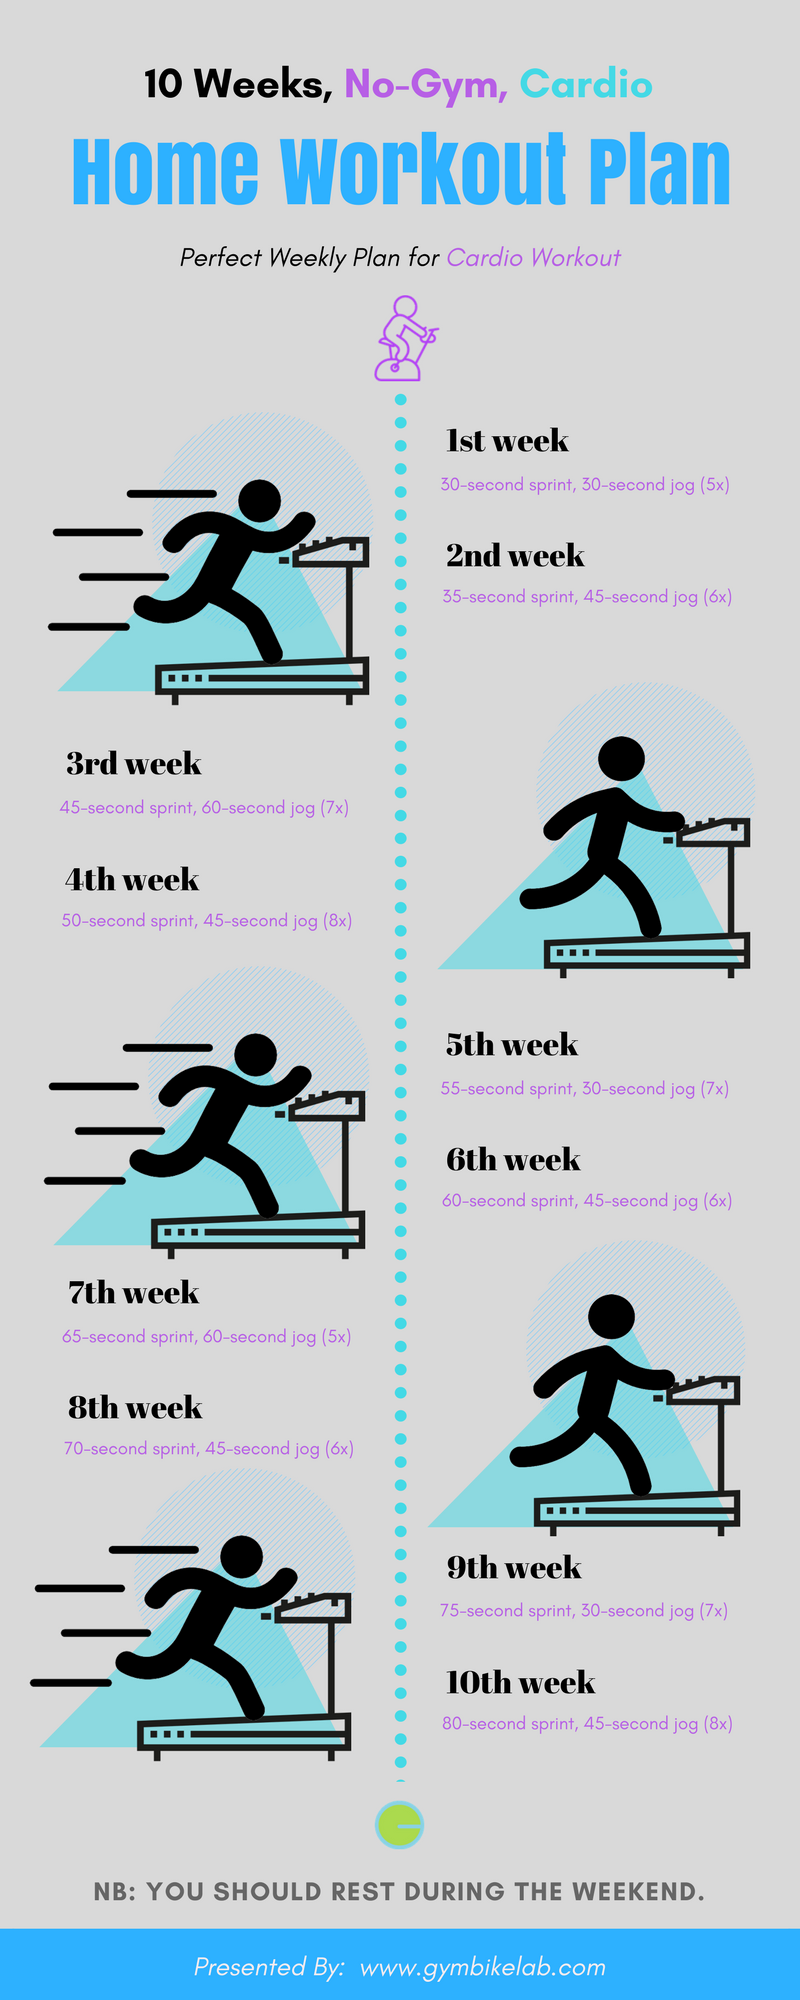 Week no gym home workout plan for cardio exercise